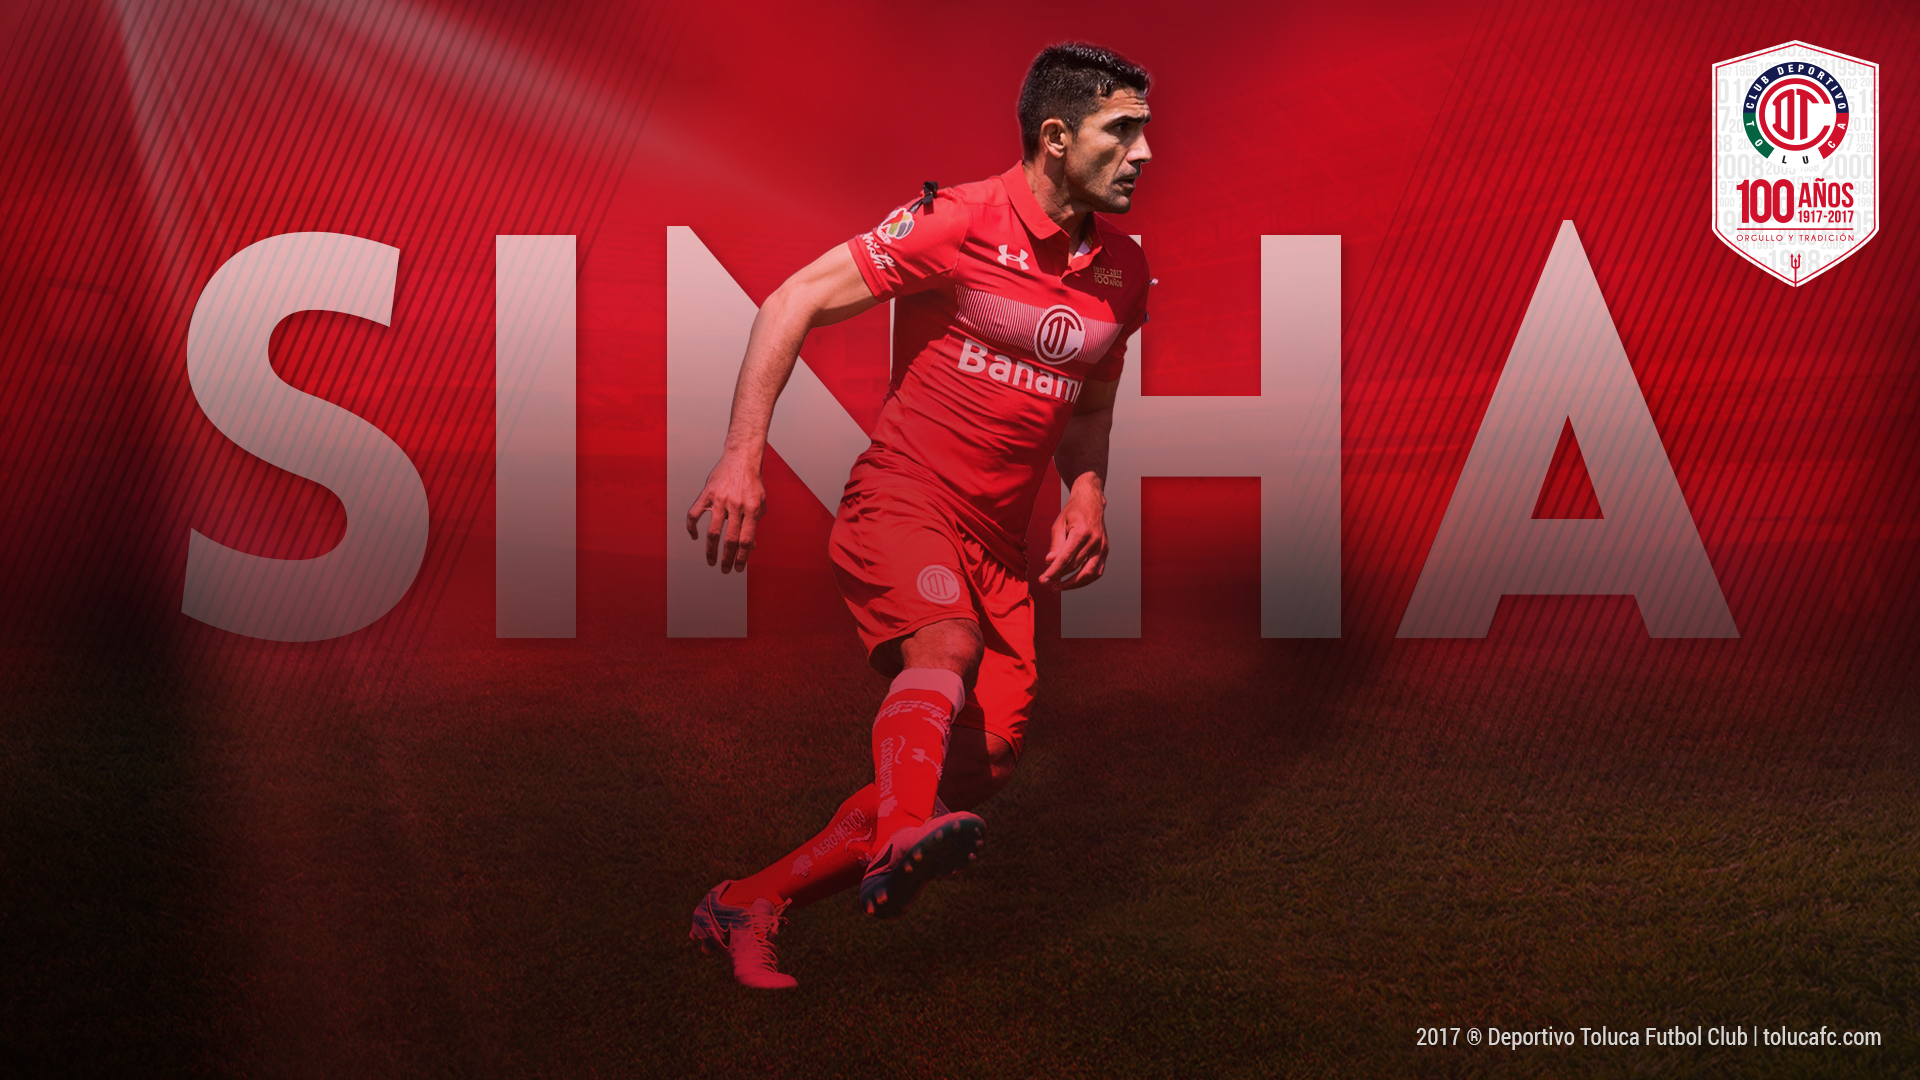 club toluca wallpaper - photo #30